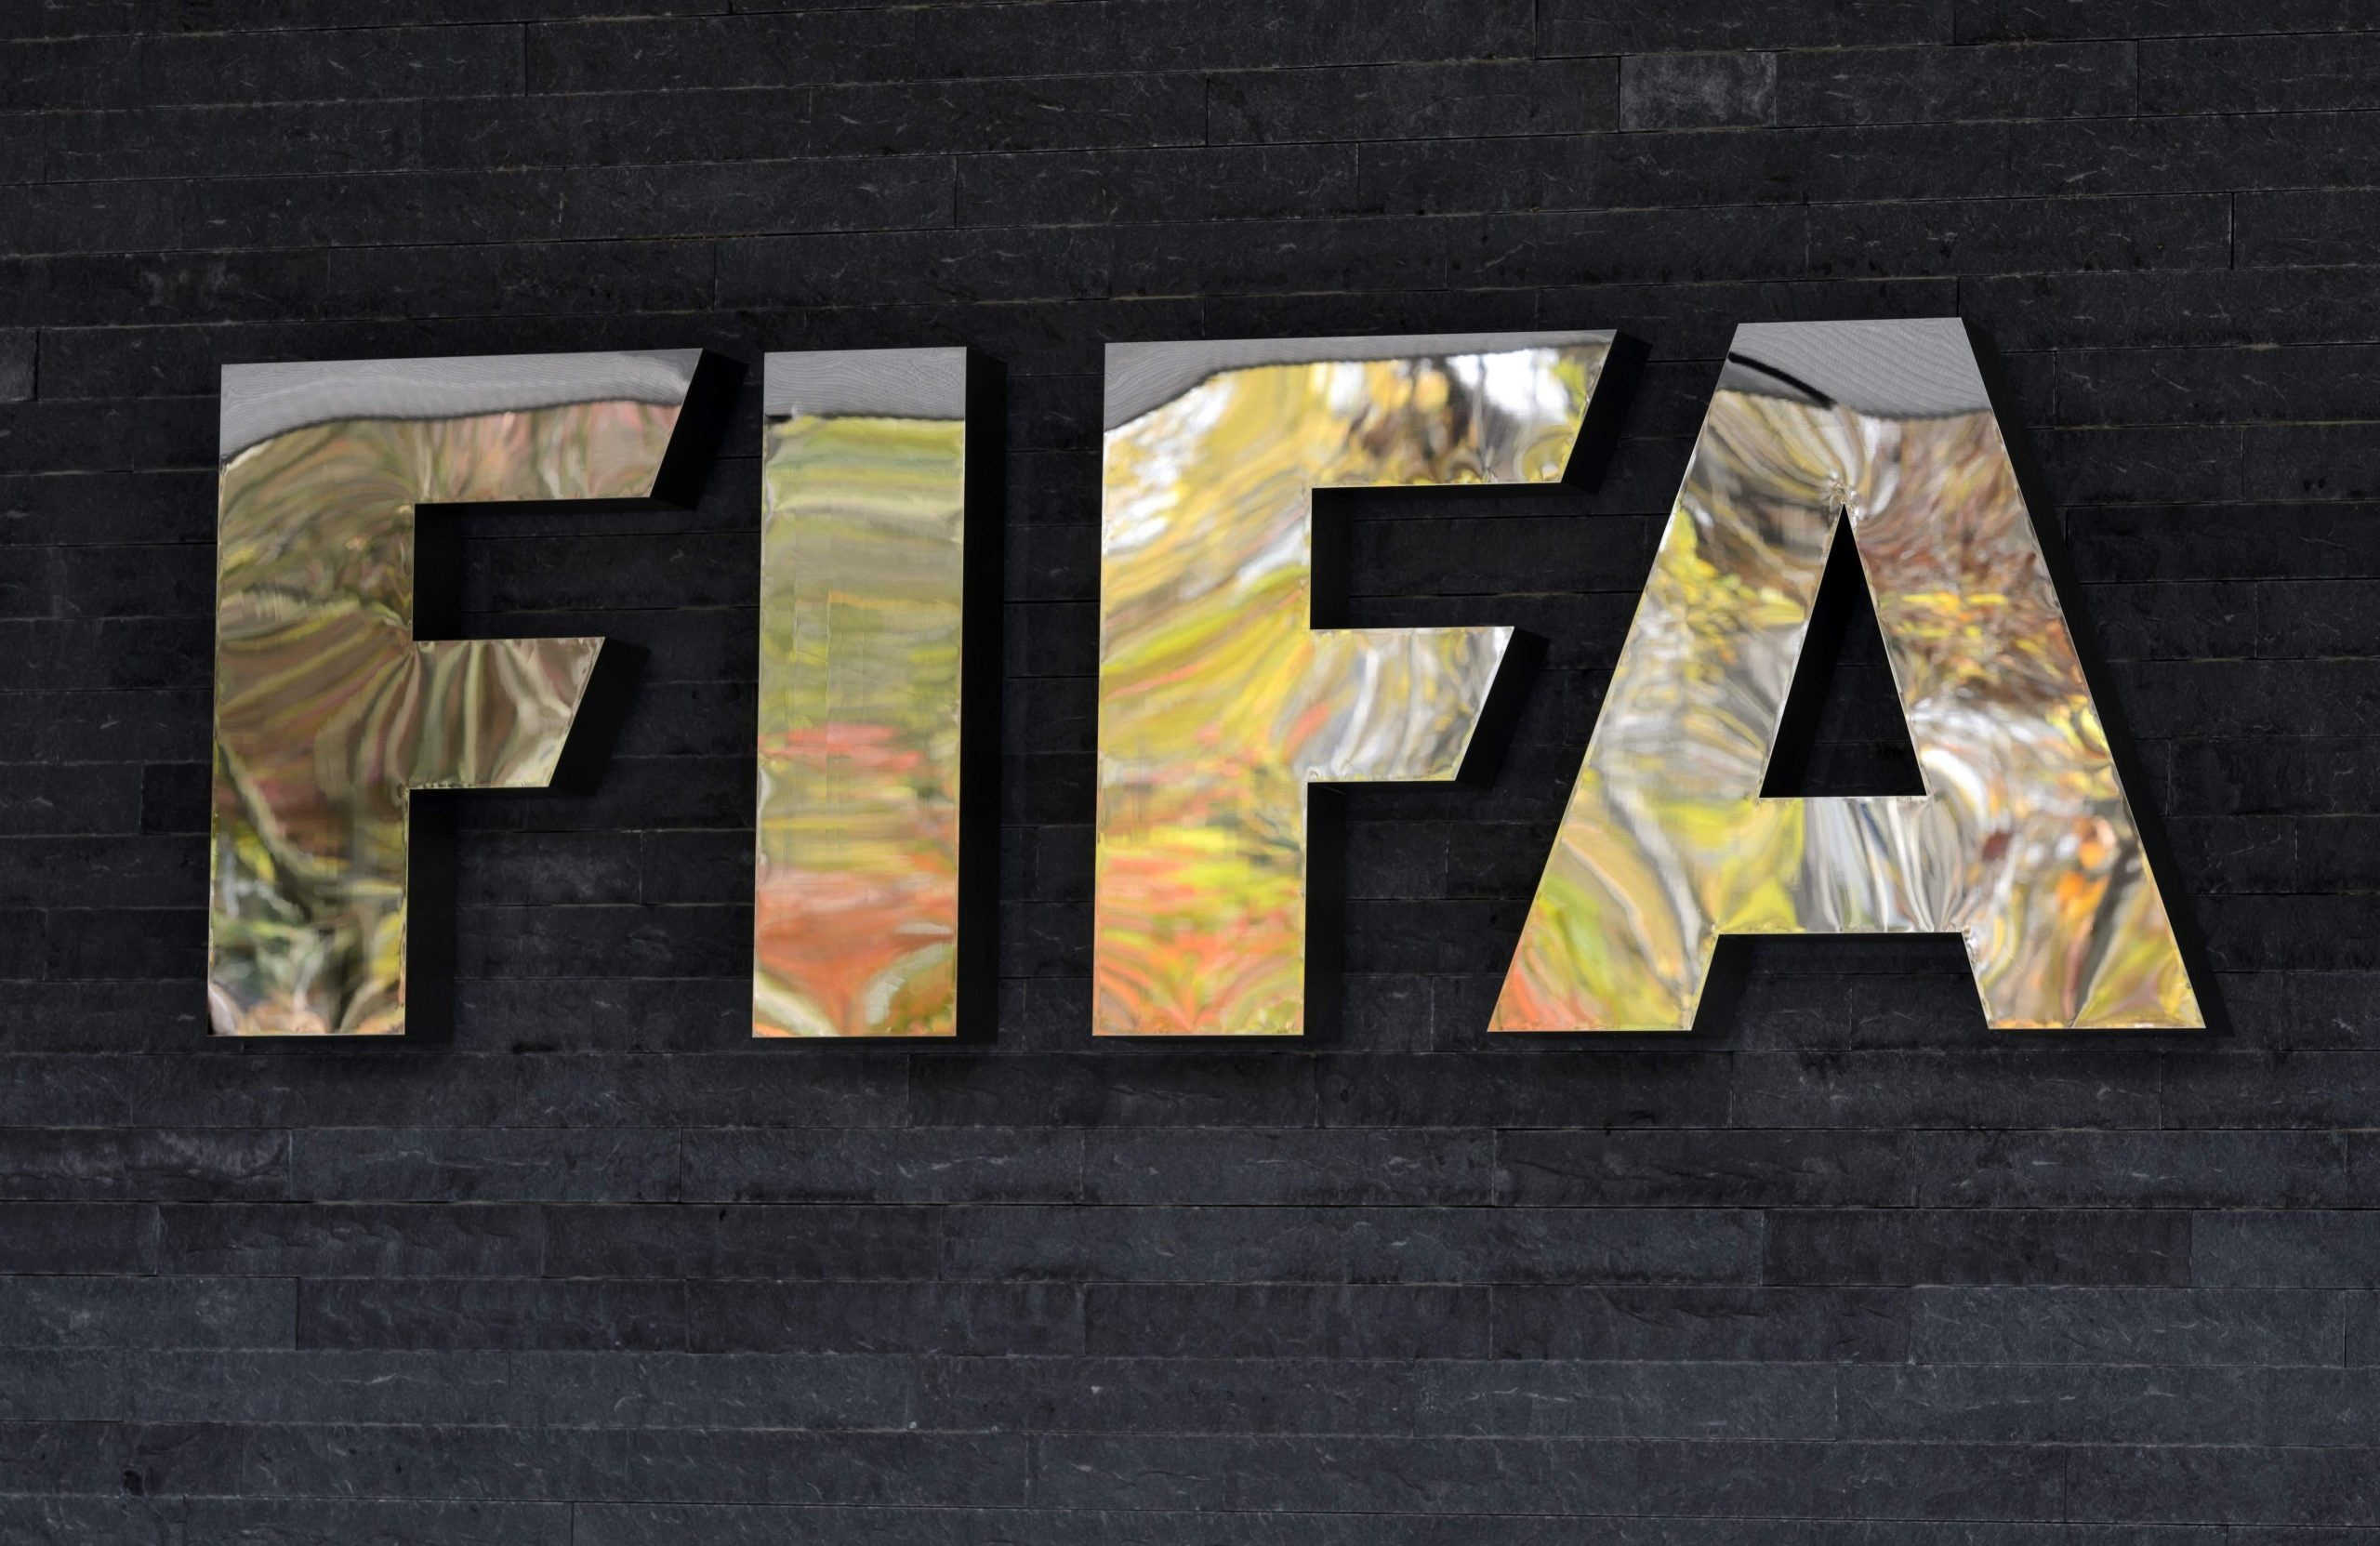 Exit one smooth bald Swiss career administrator at Fifa - and enter another